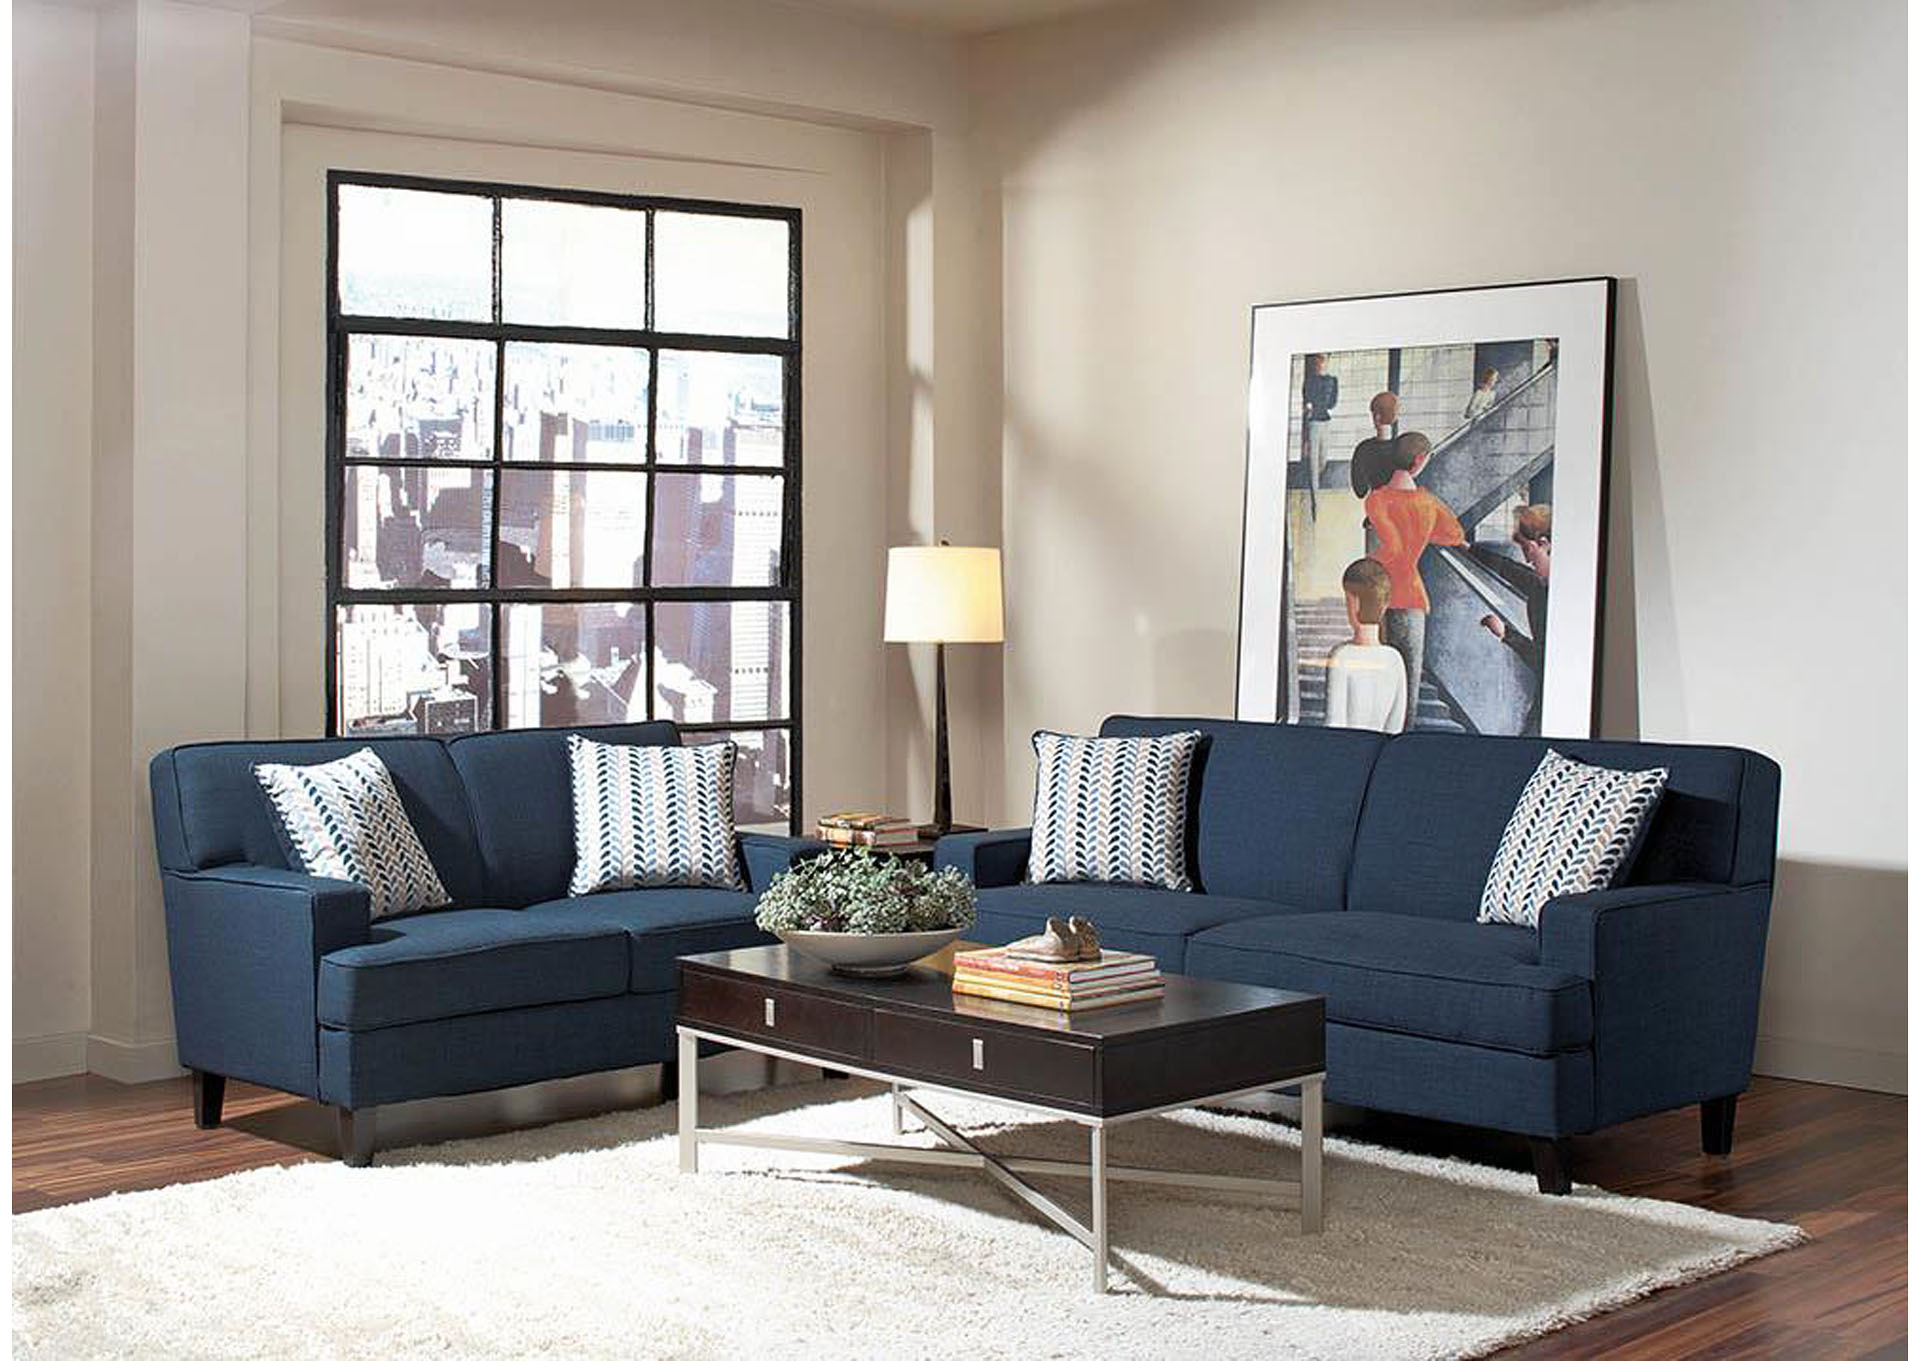 Finley Blue Sofa,ABF Coaster Furniture